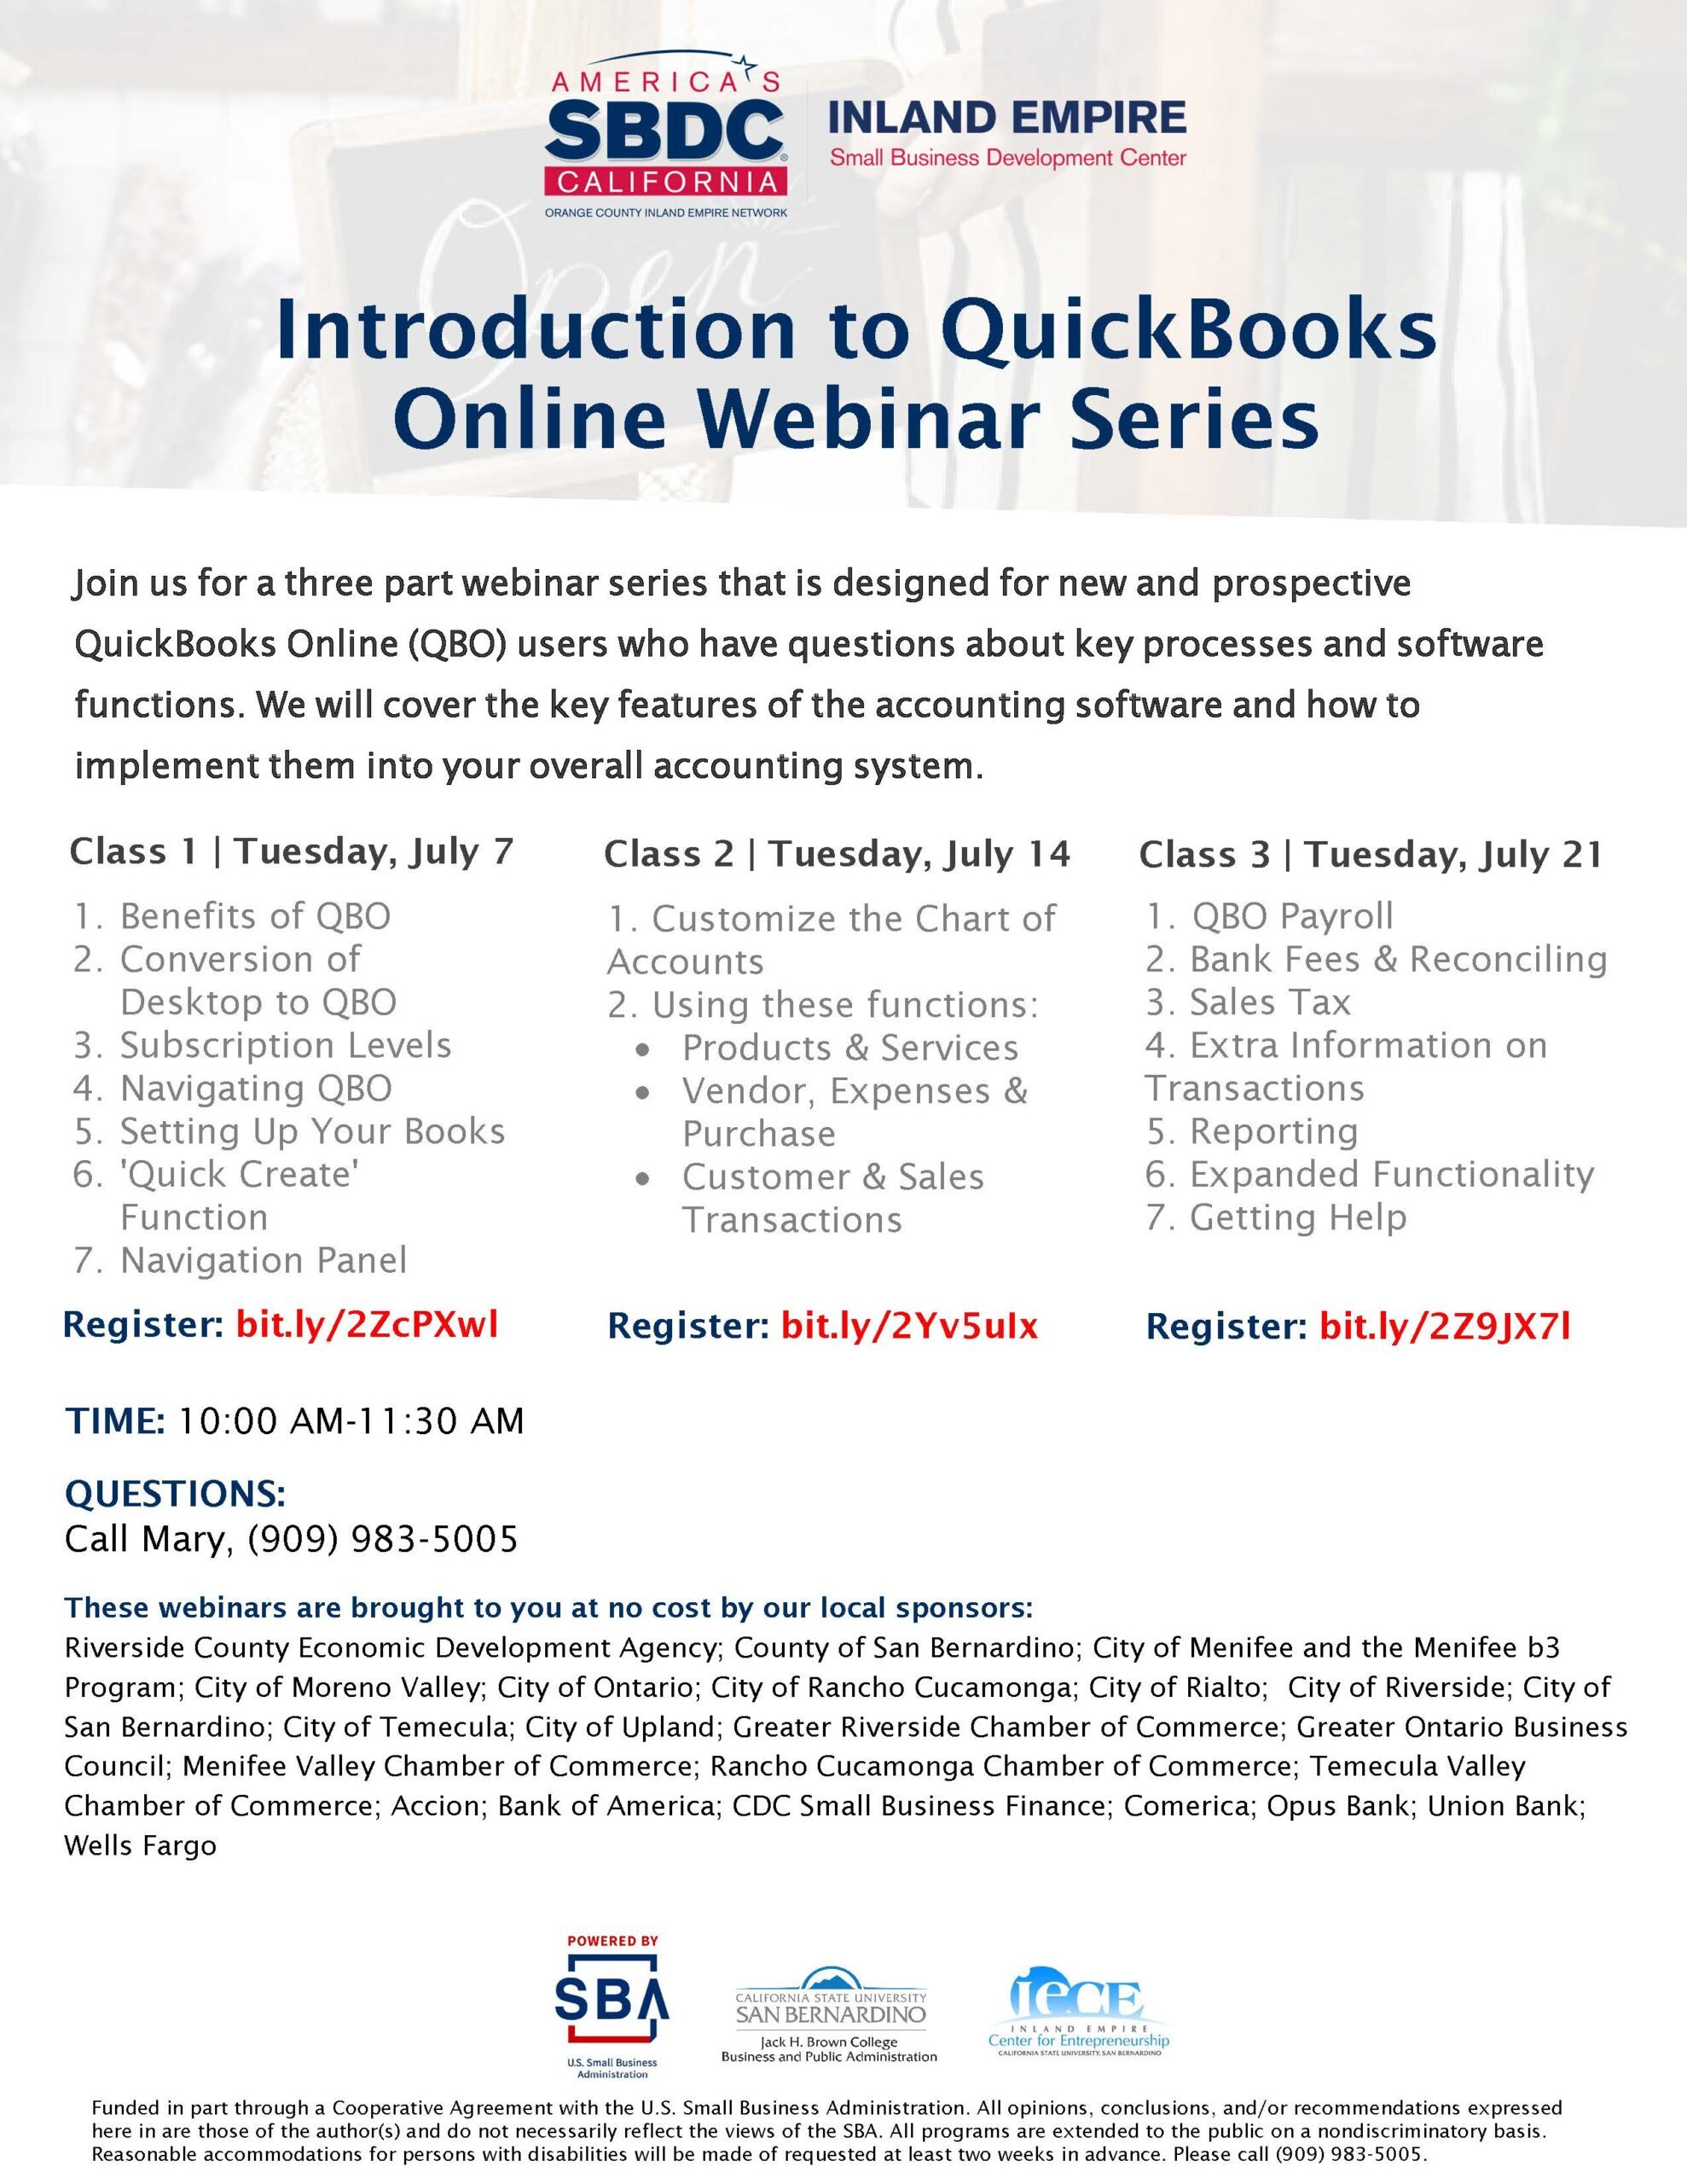 Introduction to QuickBooks Online (Class 3)